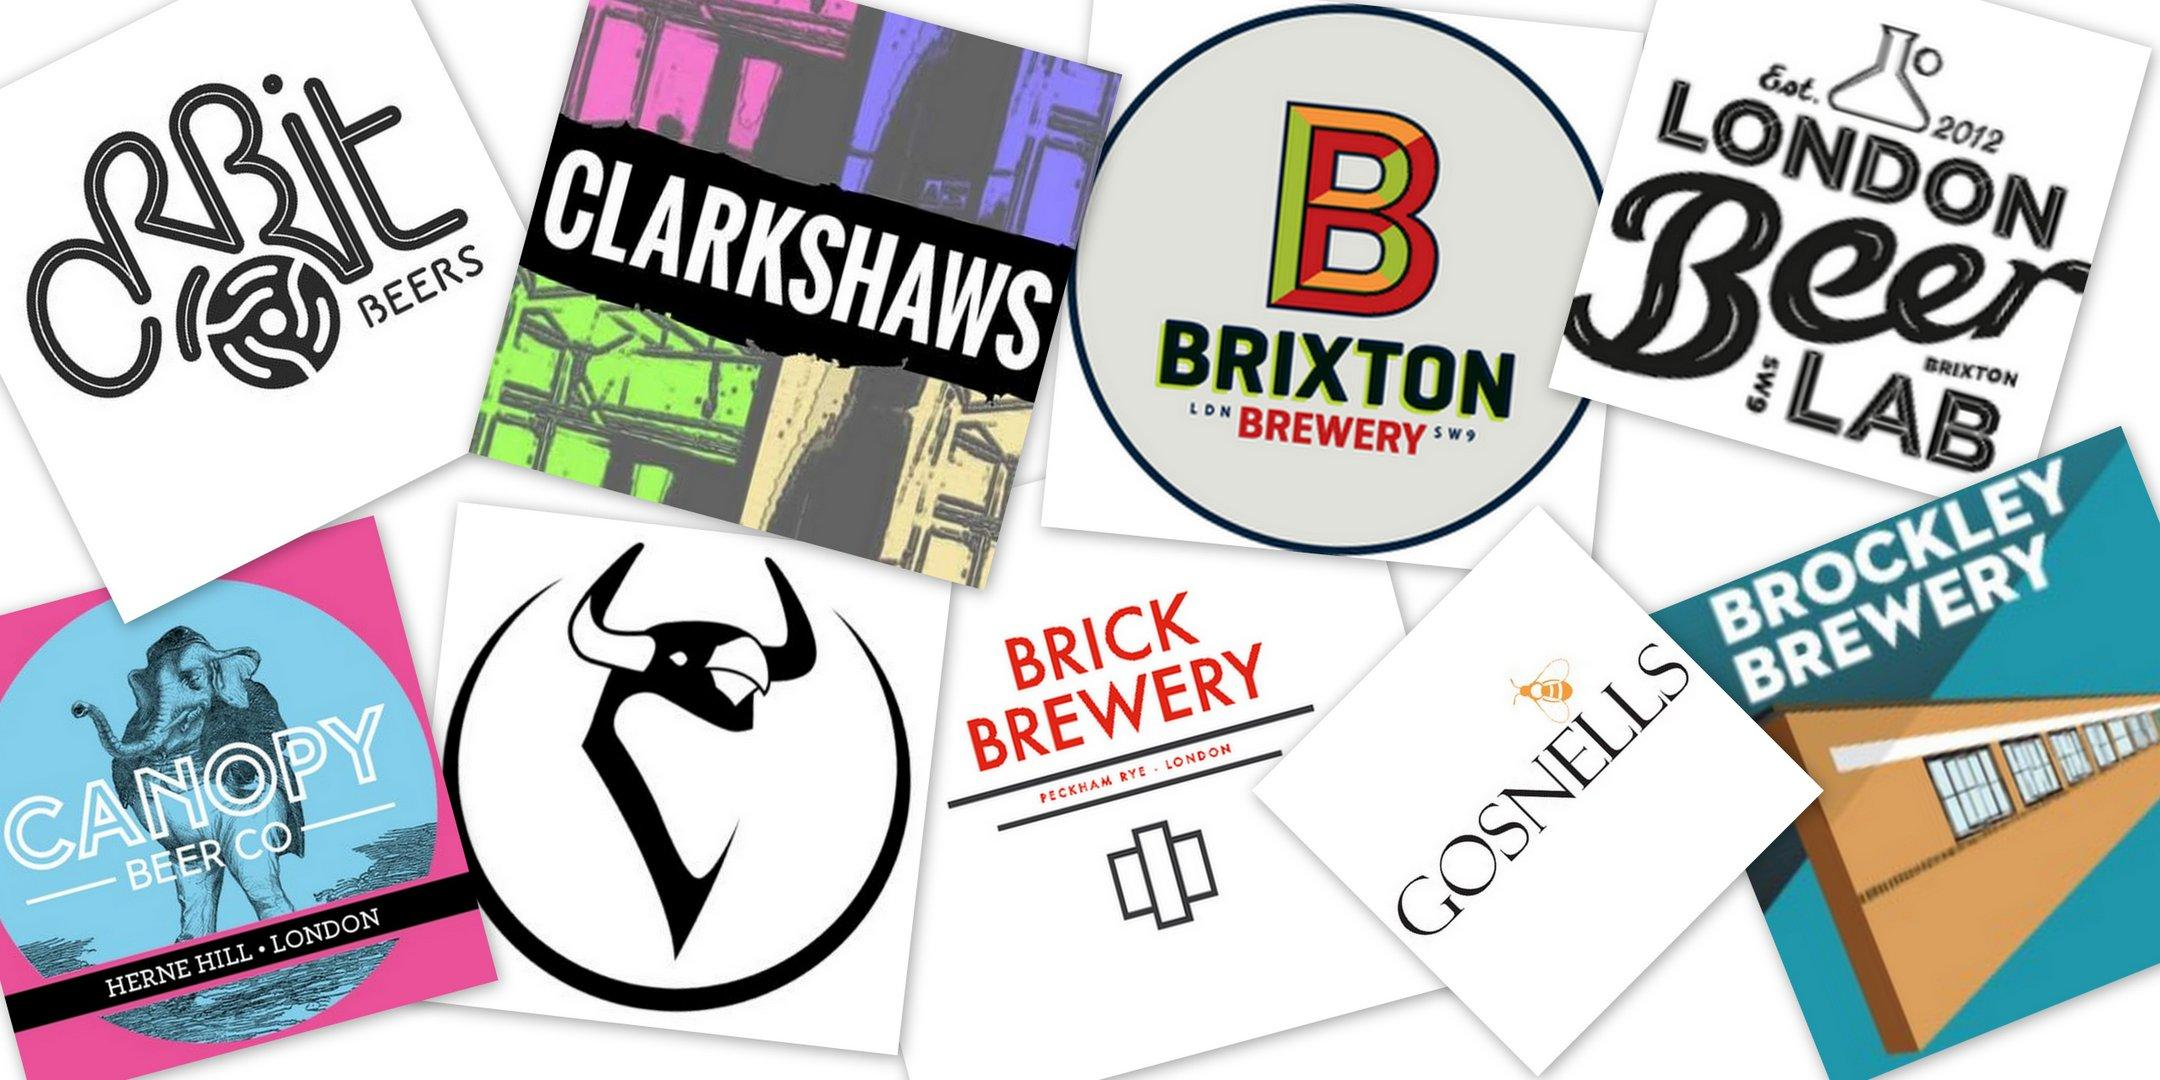 South London Brewery Trail